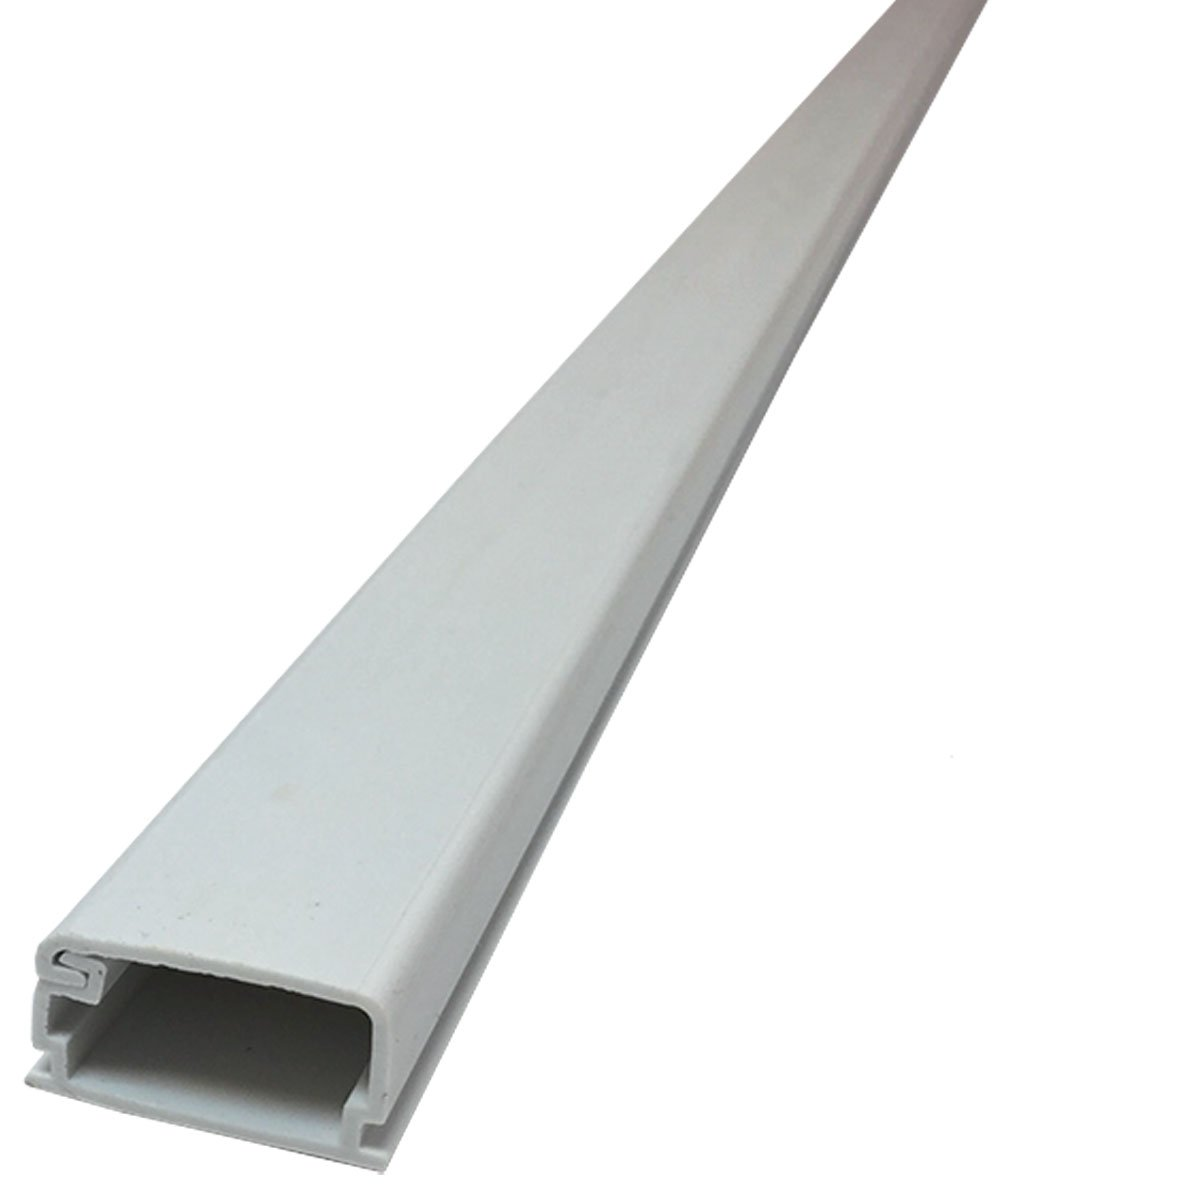 Medium Latching Surface Cable Raceways - (5 x 59'' Sticks = 24.5FT) - Color: White